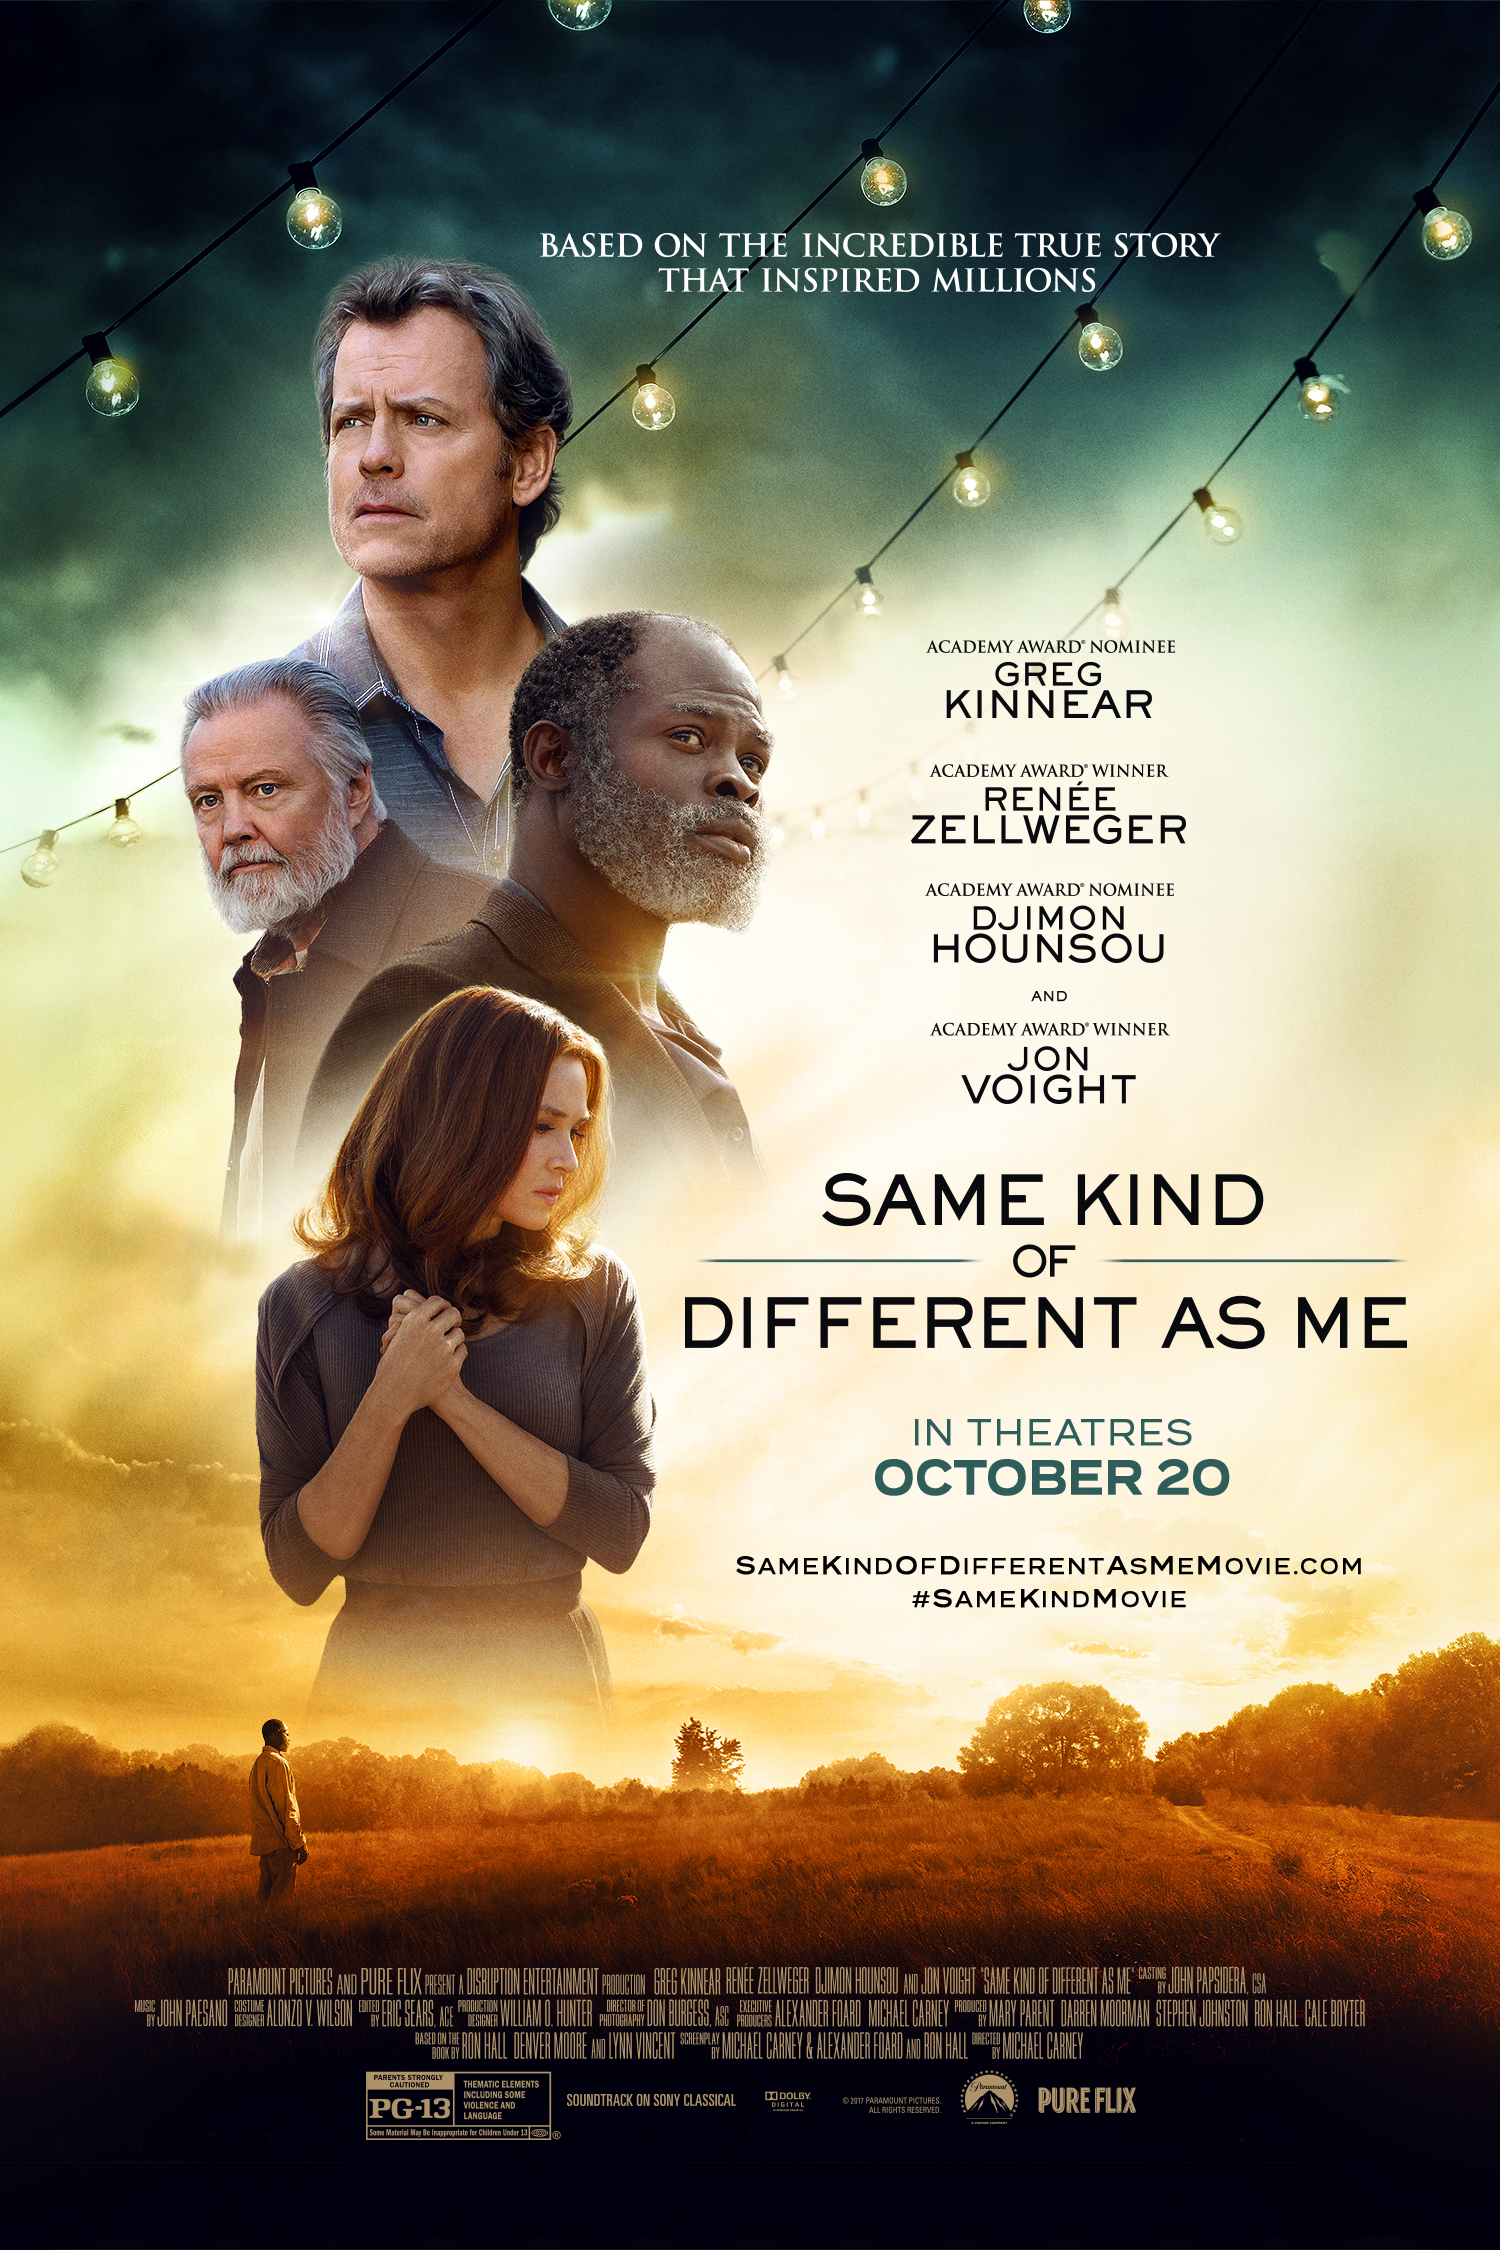 Same Kind of Different As Me Movie Based on a book, this is the story of people helping each other and finding out that we are not as different as we might think. Releases in theaters 10/20/17 #SameKindMovieL3 #ad